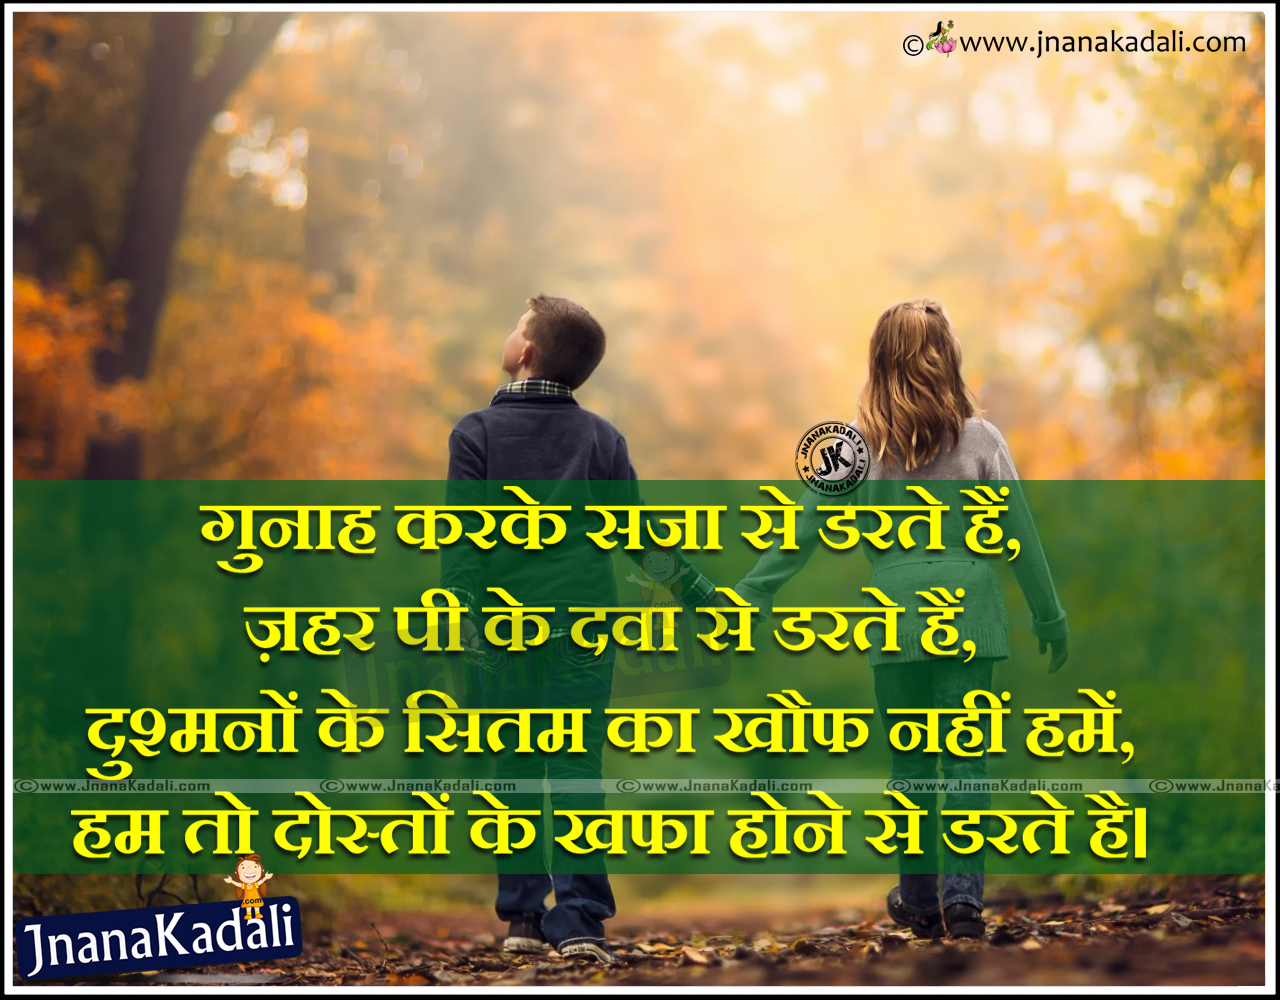 Good Lines For Friend In Hindi The Christmas Tree